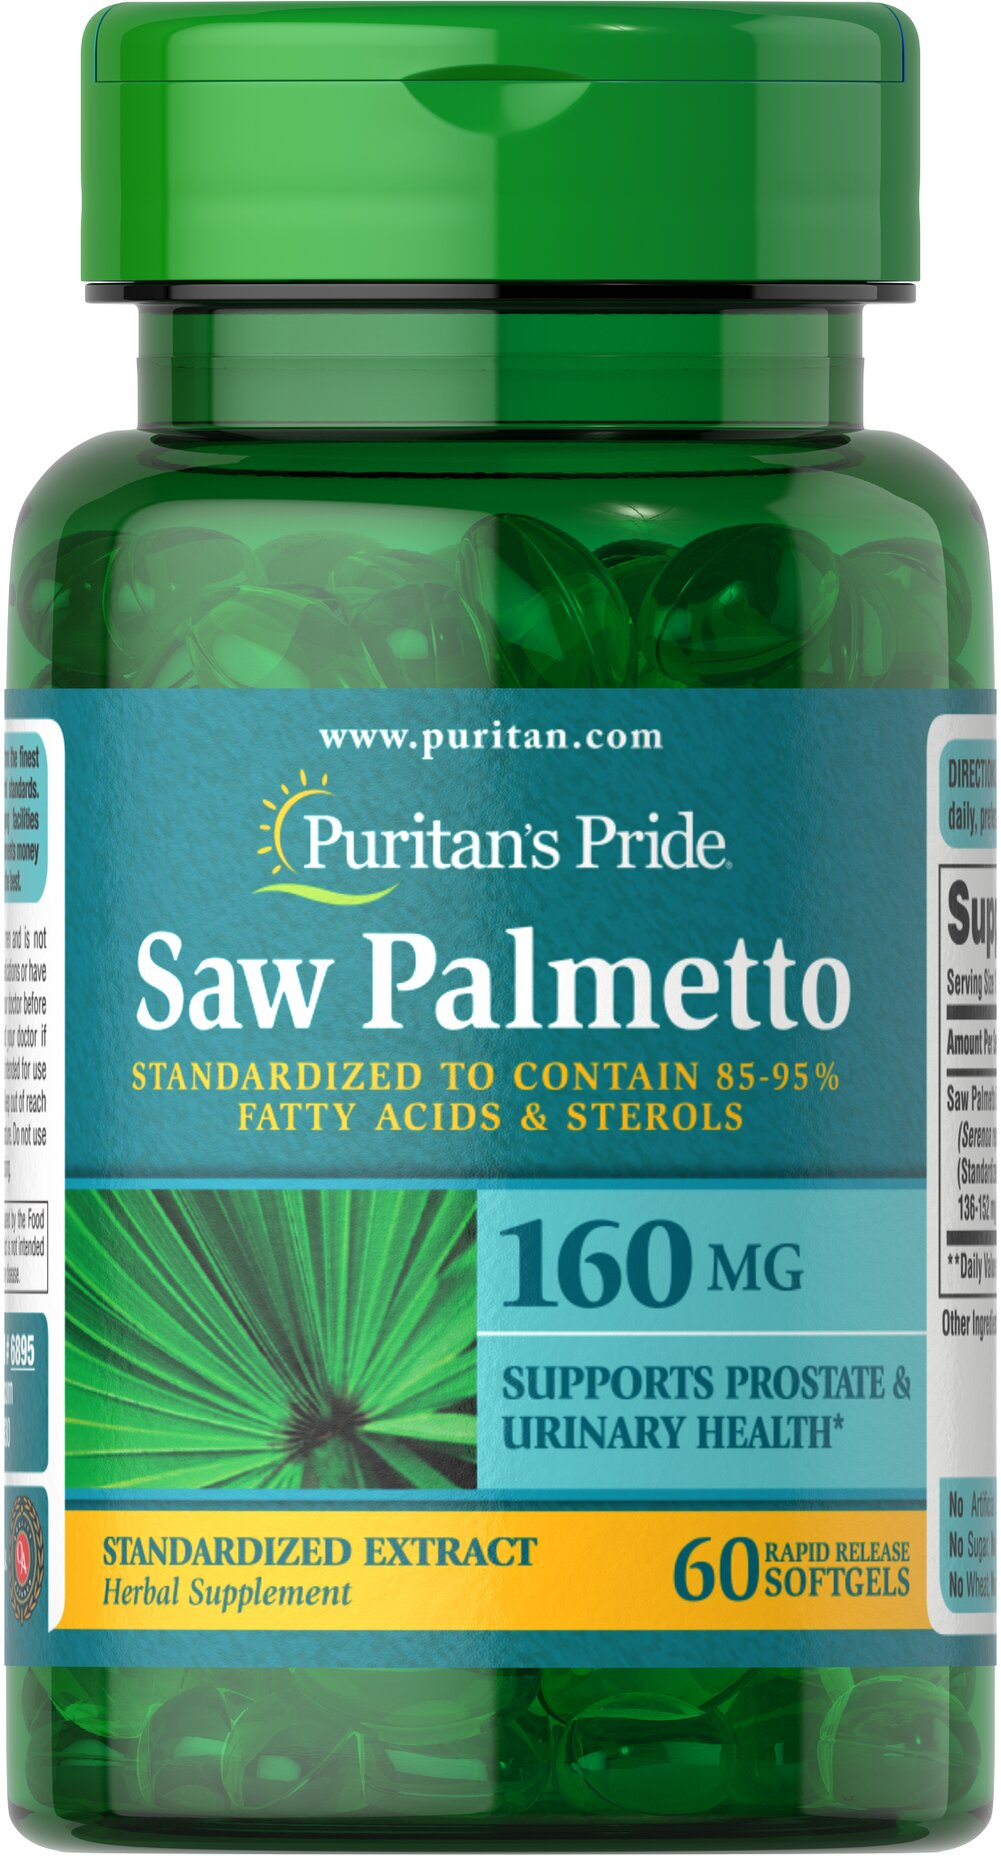 Saw Palmetto Standardized Extract 160 mg <p>Men the world over are discovering the beneficial properties of Saw Palmetto. Saw Palmetto contains phytochemicals, which support prostate health and urinary health.**</p><p>Our Saw Palmetto formula is fully assayed and standardized to ensure that each softgel contains 85-95% fatty acids and active sterols, which guarantees bioactivity.**</p> 60 Softgels 160 mg $12.99